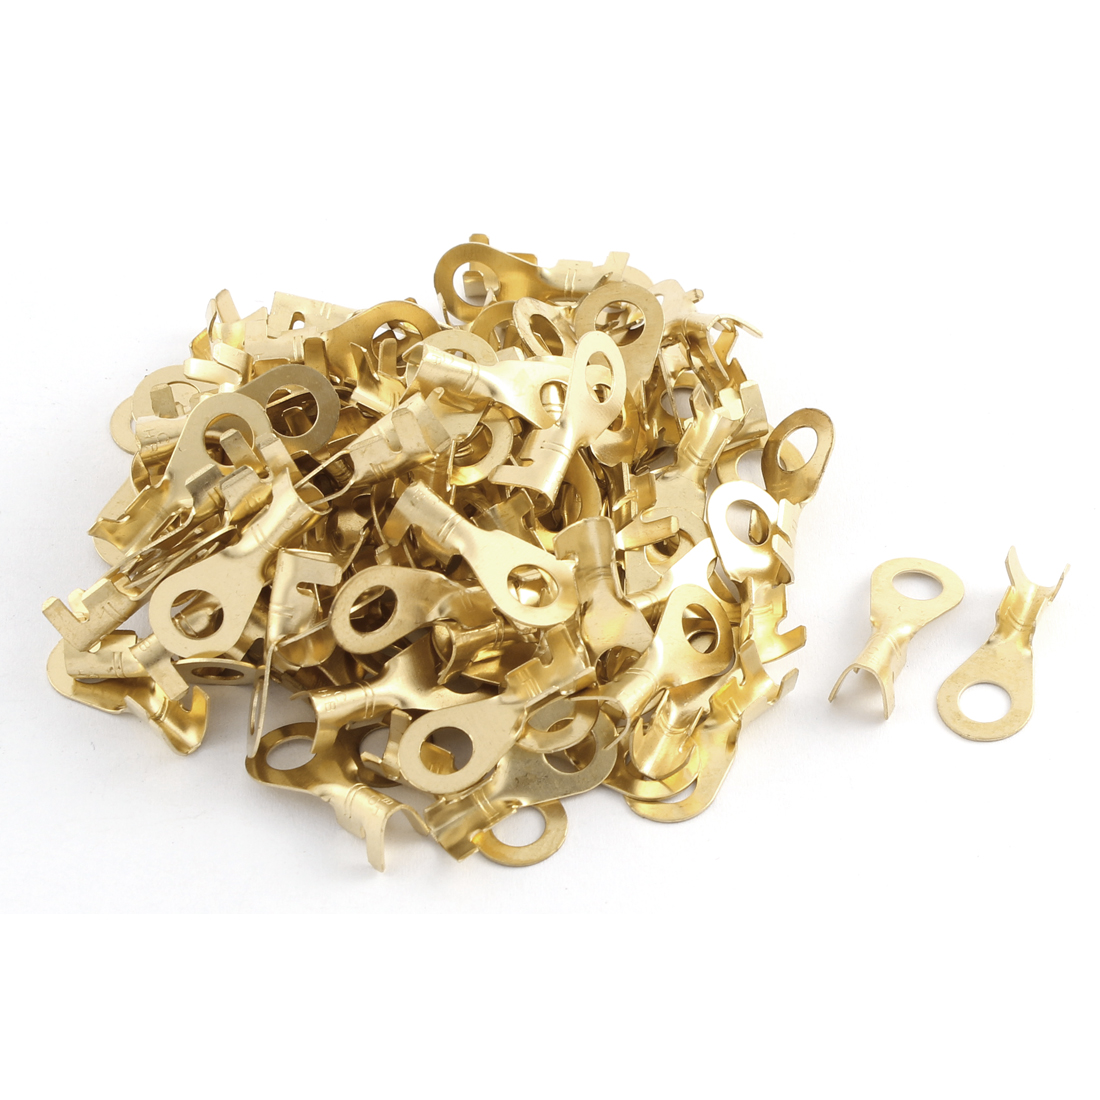 100 Pcs Copper Tongue 12-10AWG Wire Cable Connecting Rewirable Non-insulated Ring Terminals